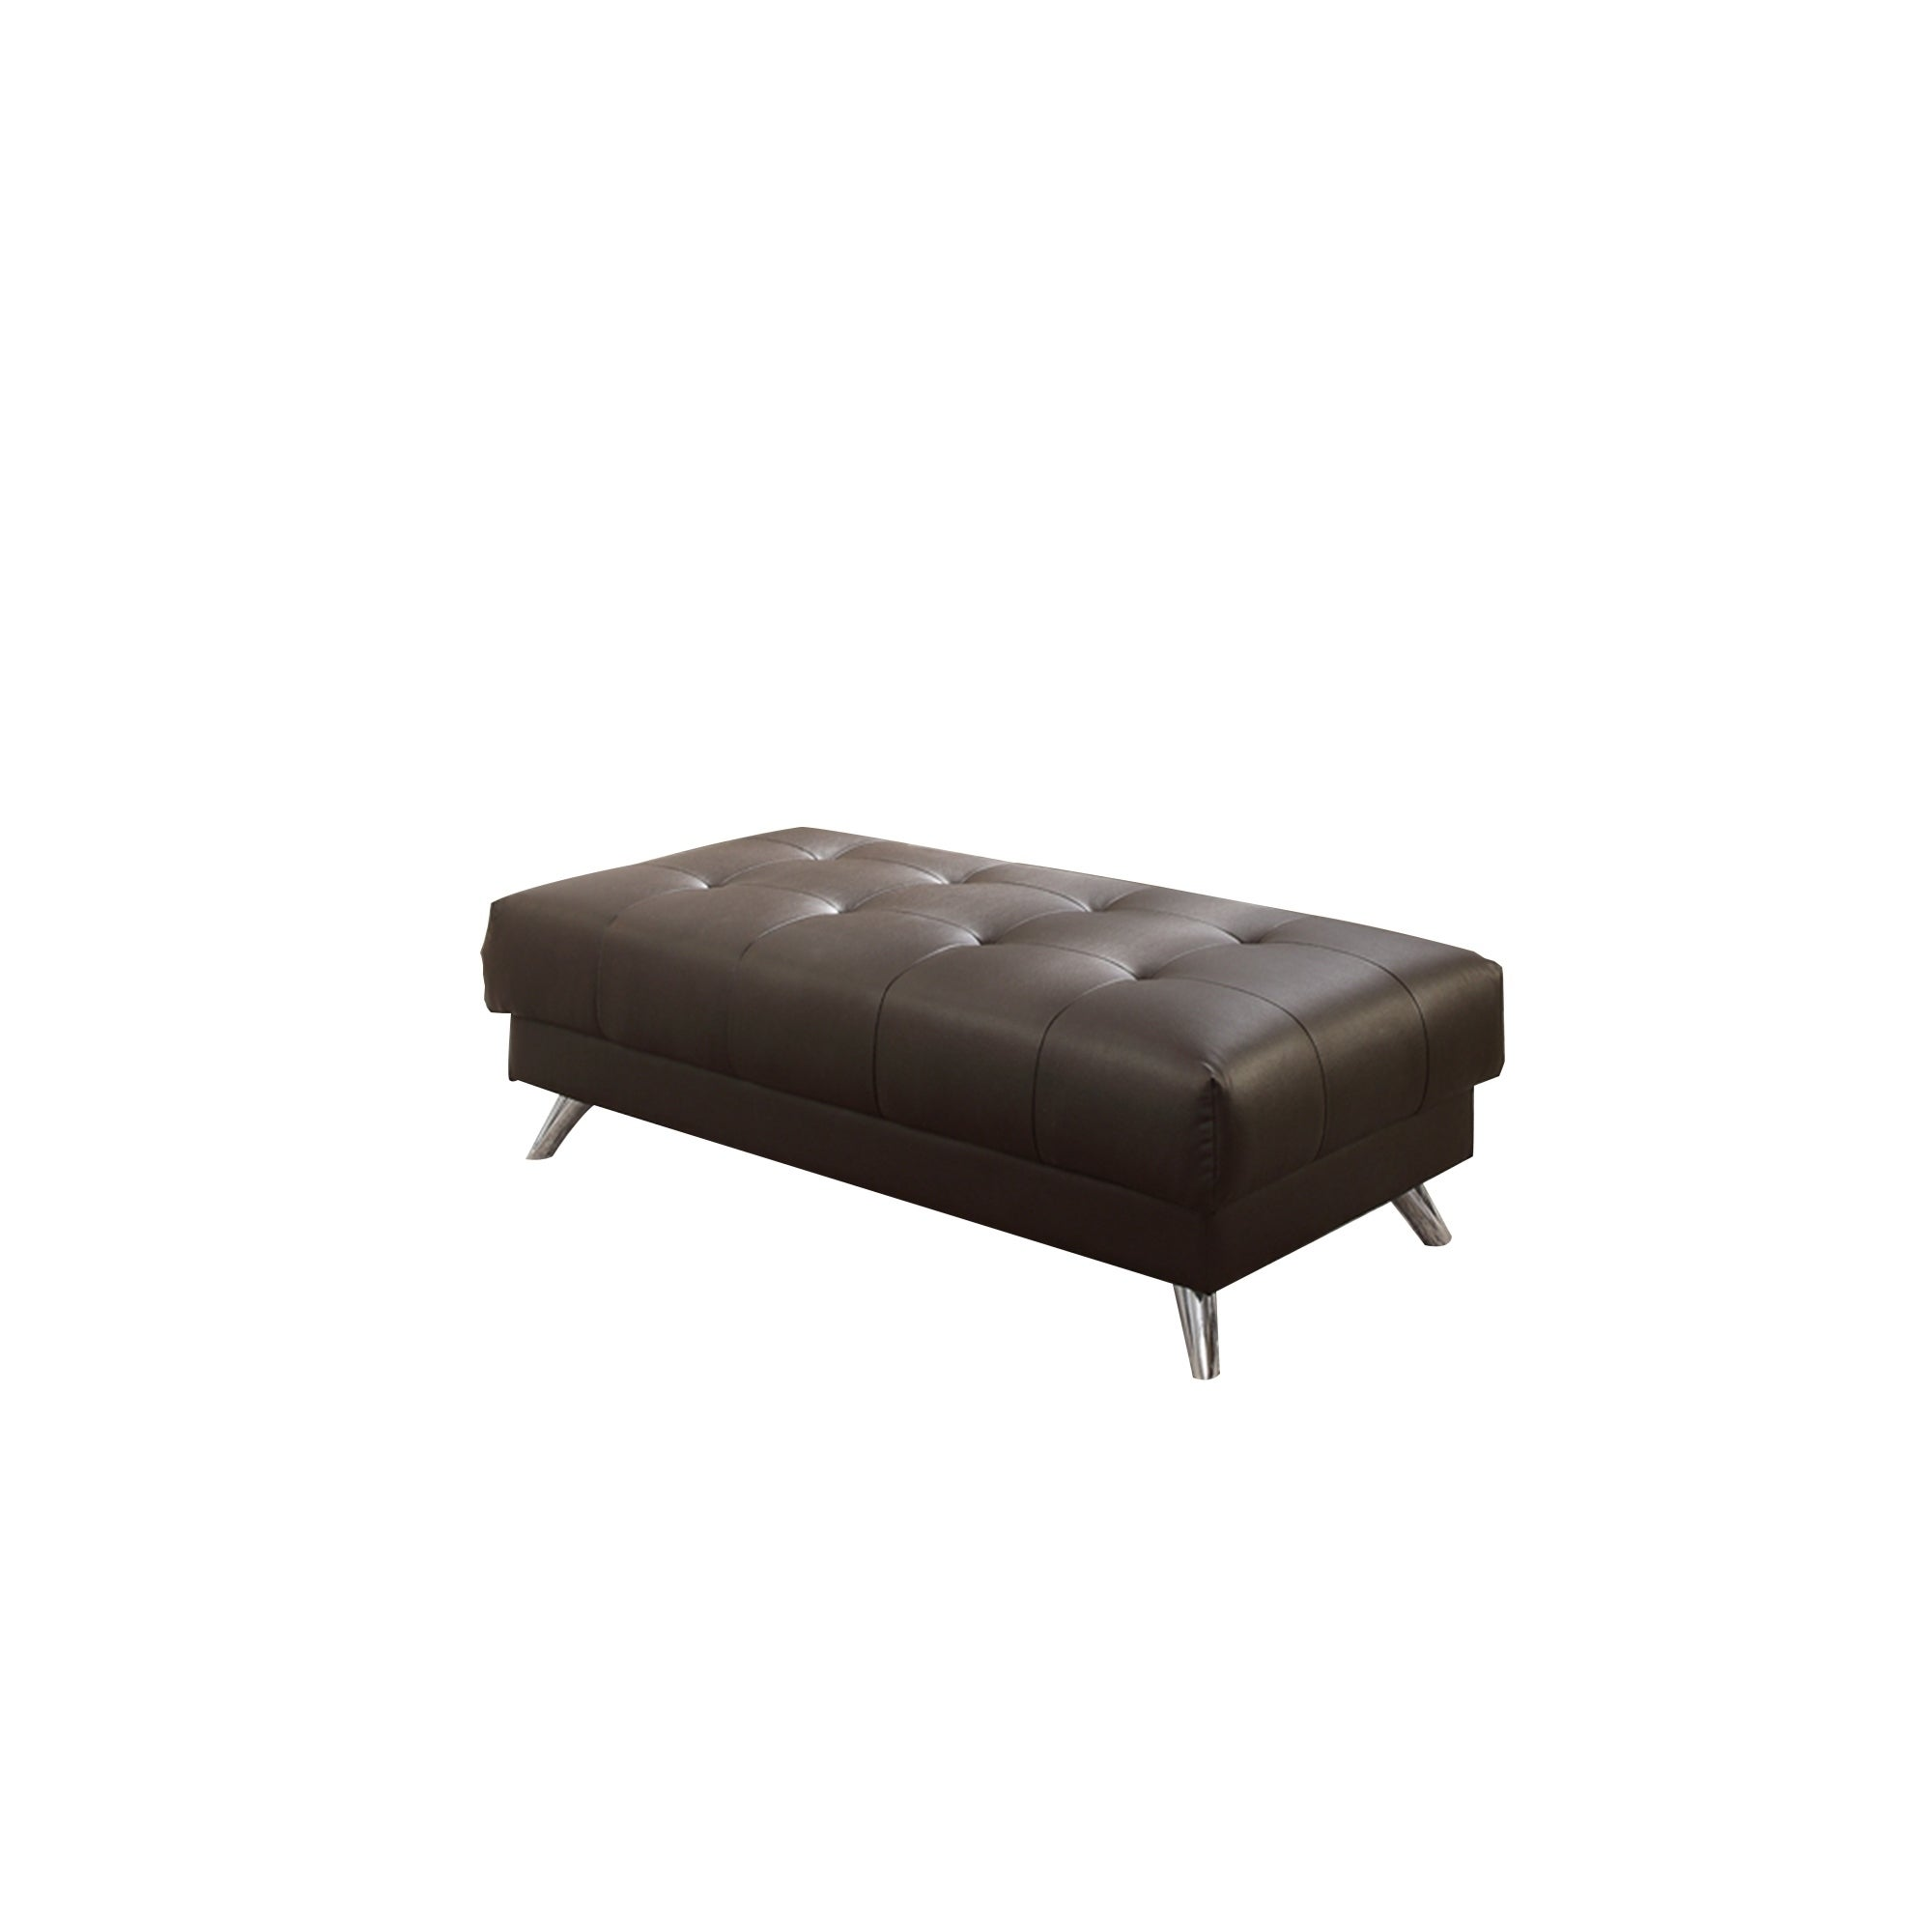 Miraculous Bonded Leather Ottoman In Espresso Brown With Chrome Legs Theyellowbook Wood Chair Design Ideas Theyellowbookinfo